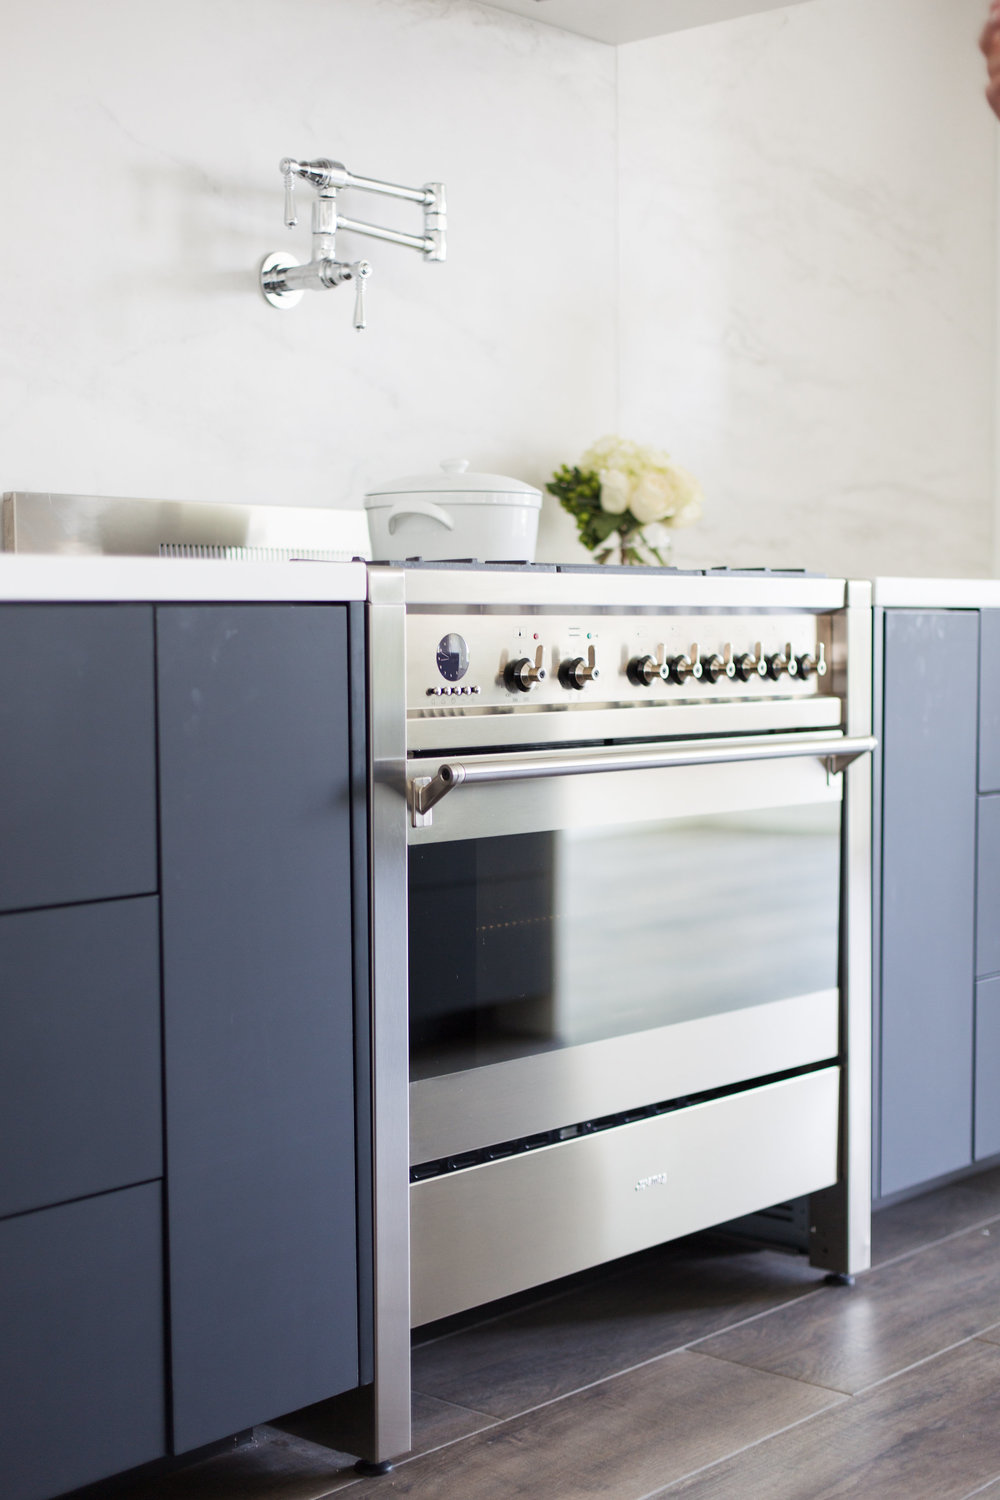 Smeg Opera Range | Calcutta Porcelain Backsplash